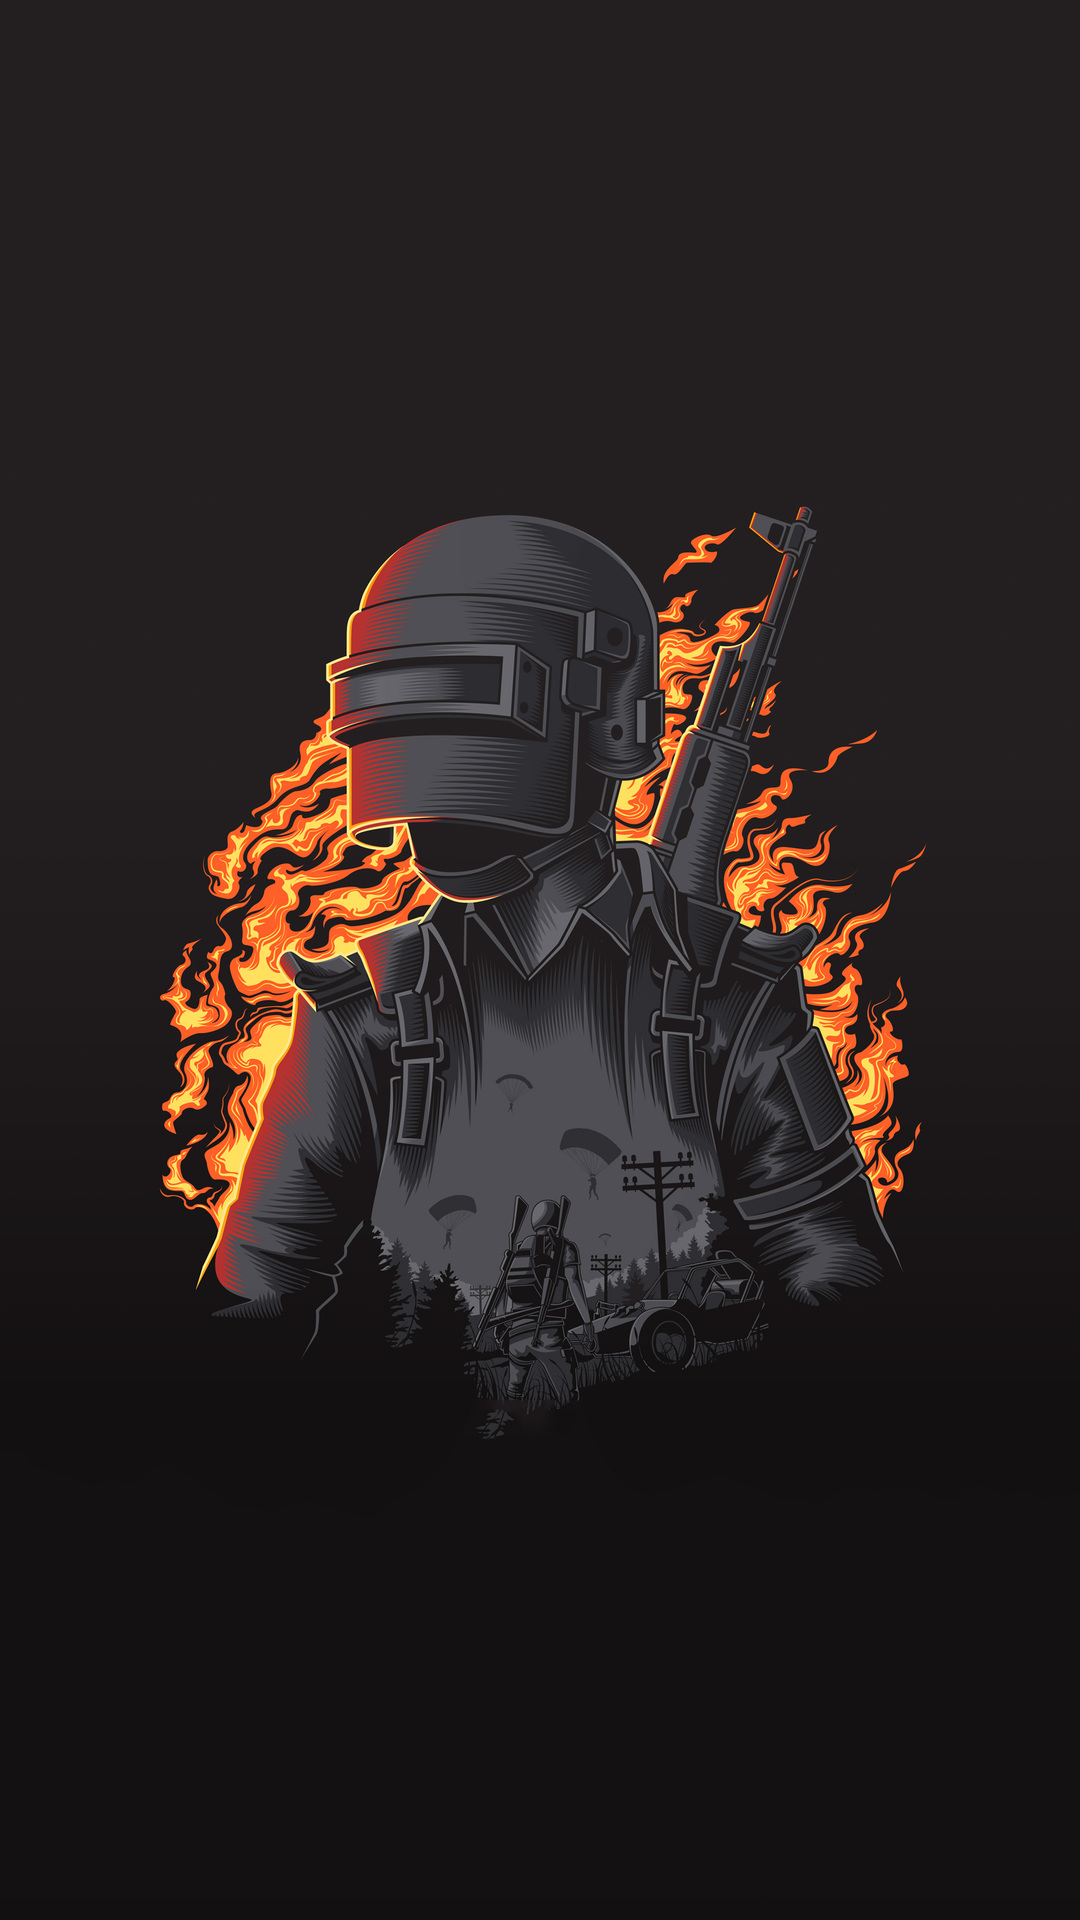 1080x1920 Pubg Illustration 4k Iphone 7,6s,6 Plus, Pixel xl